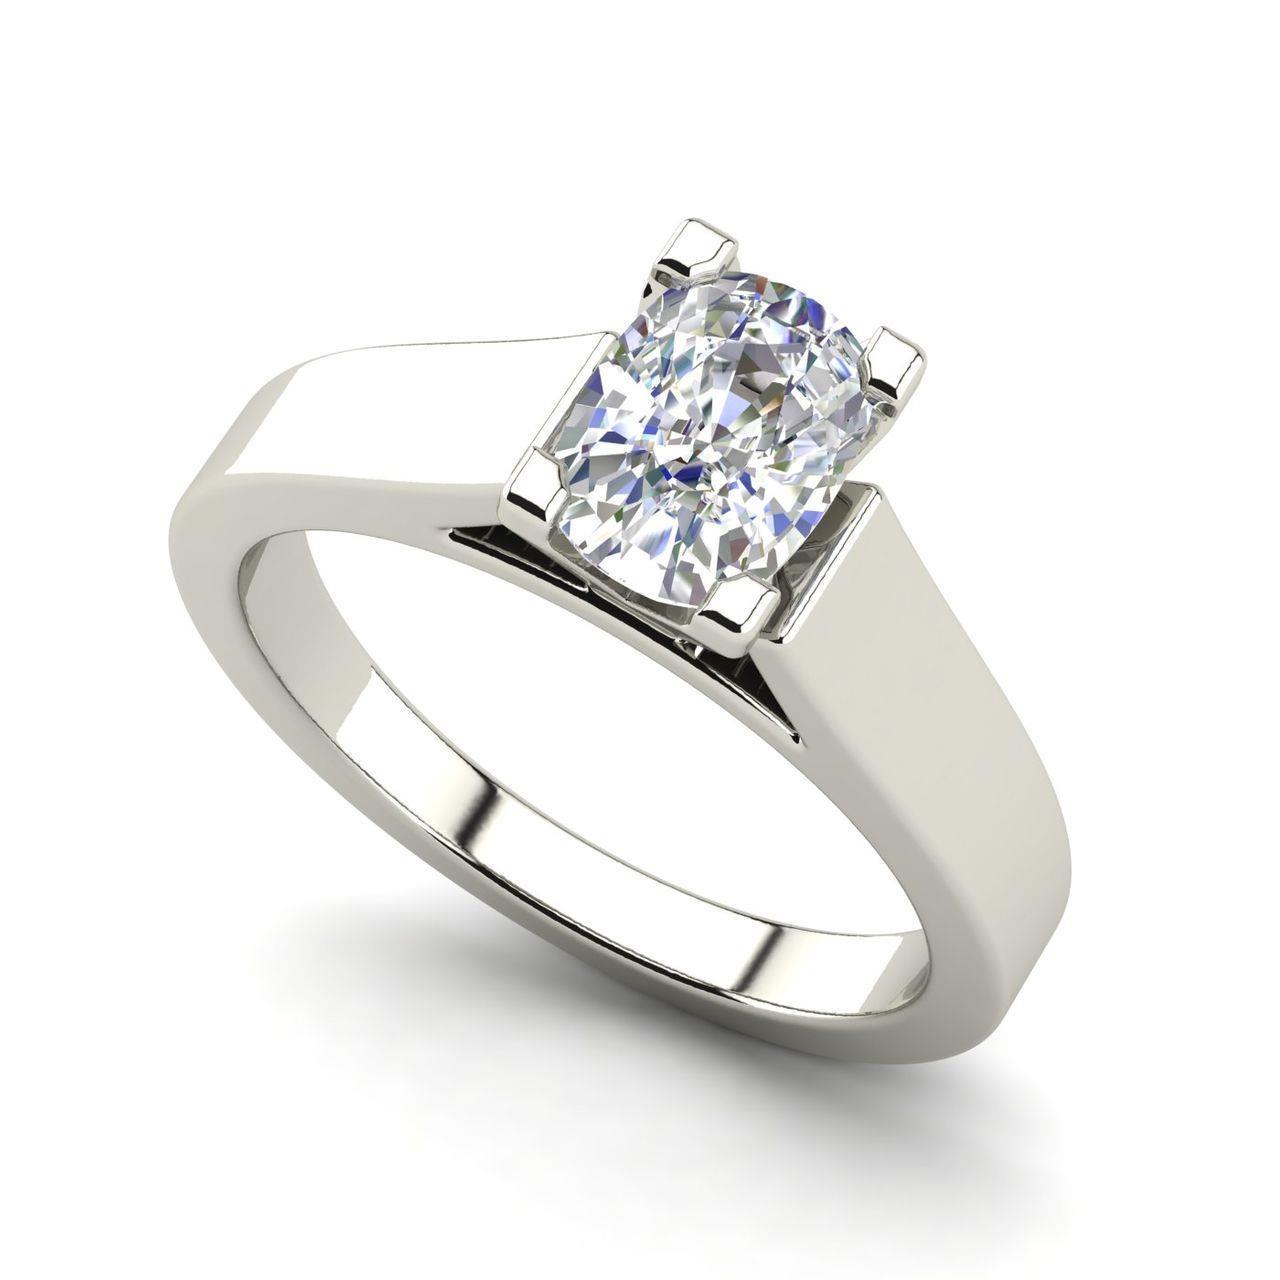 Details About Cathedral 3 Carat Vs1 H Oval Cut Diamond Engagement Ring White Gold